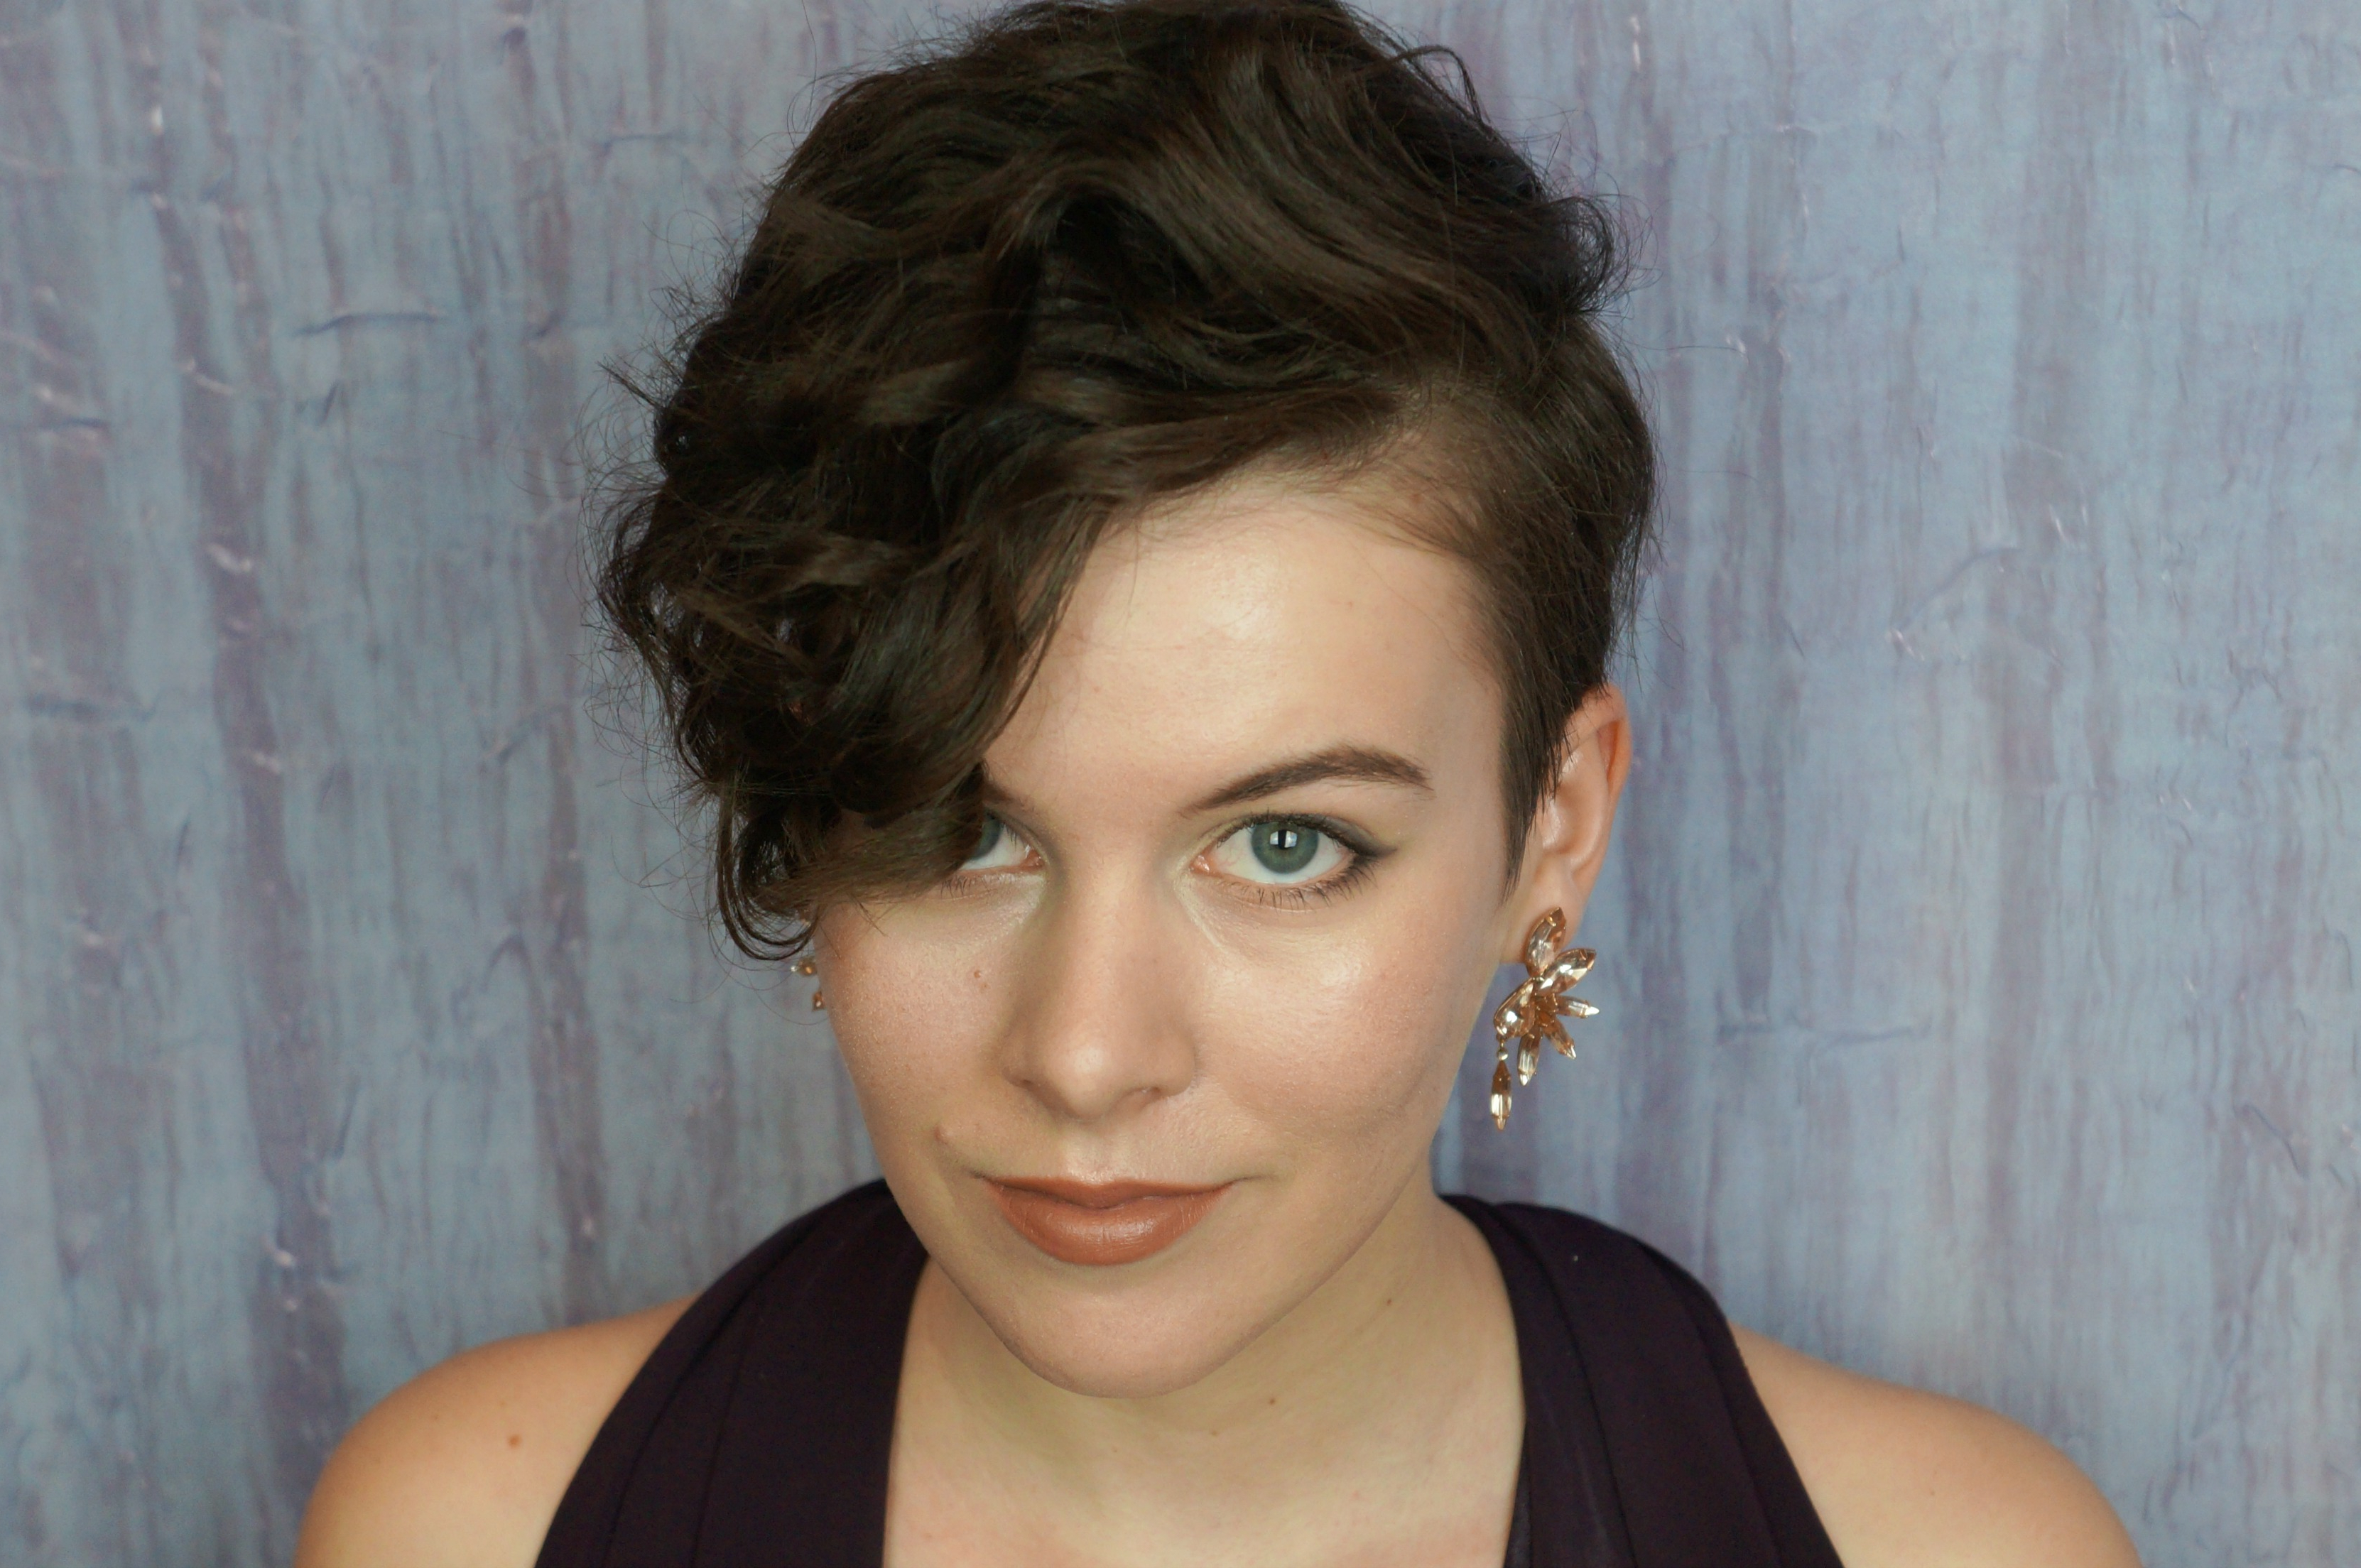 4 Short Hairstyles For Prom That Prove Pixie Cuts Can Be Extremely Glam Within Special Occasion Short Hairstyles (View 7 of 25)